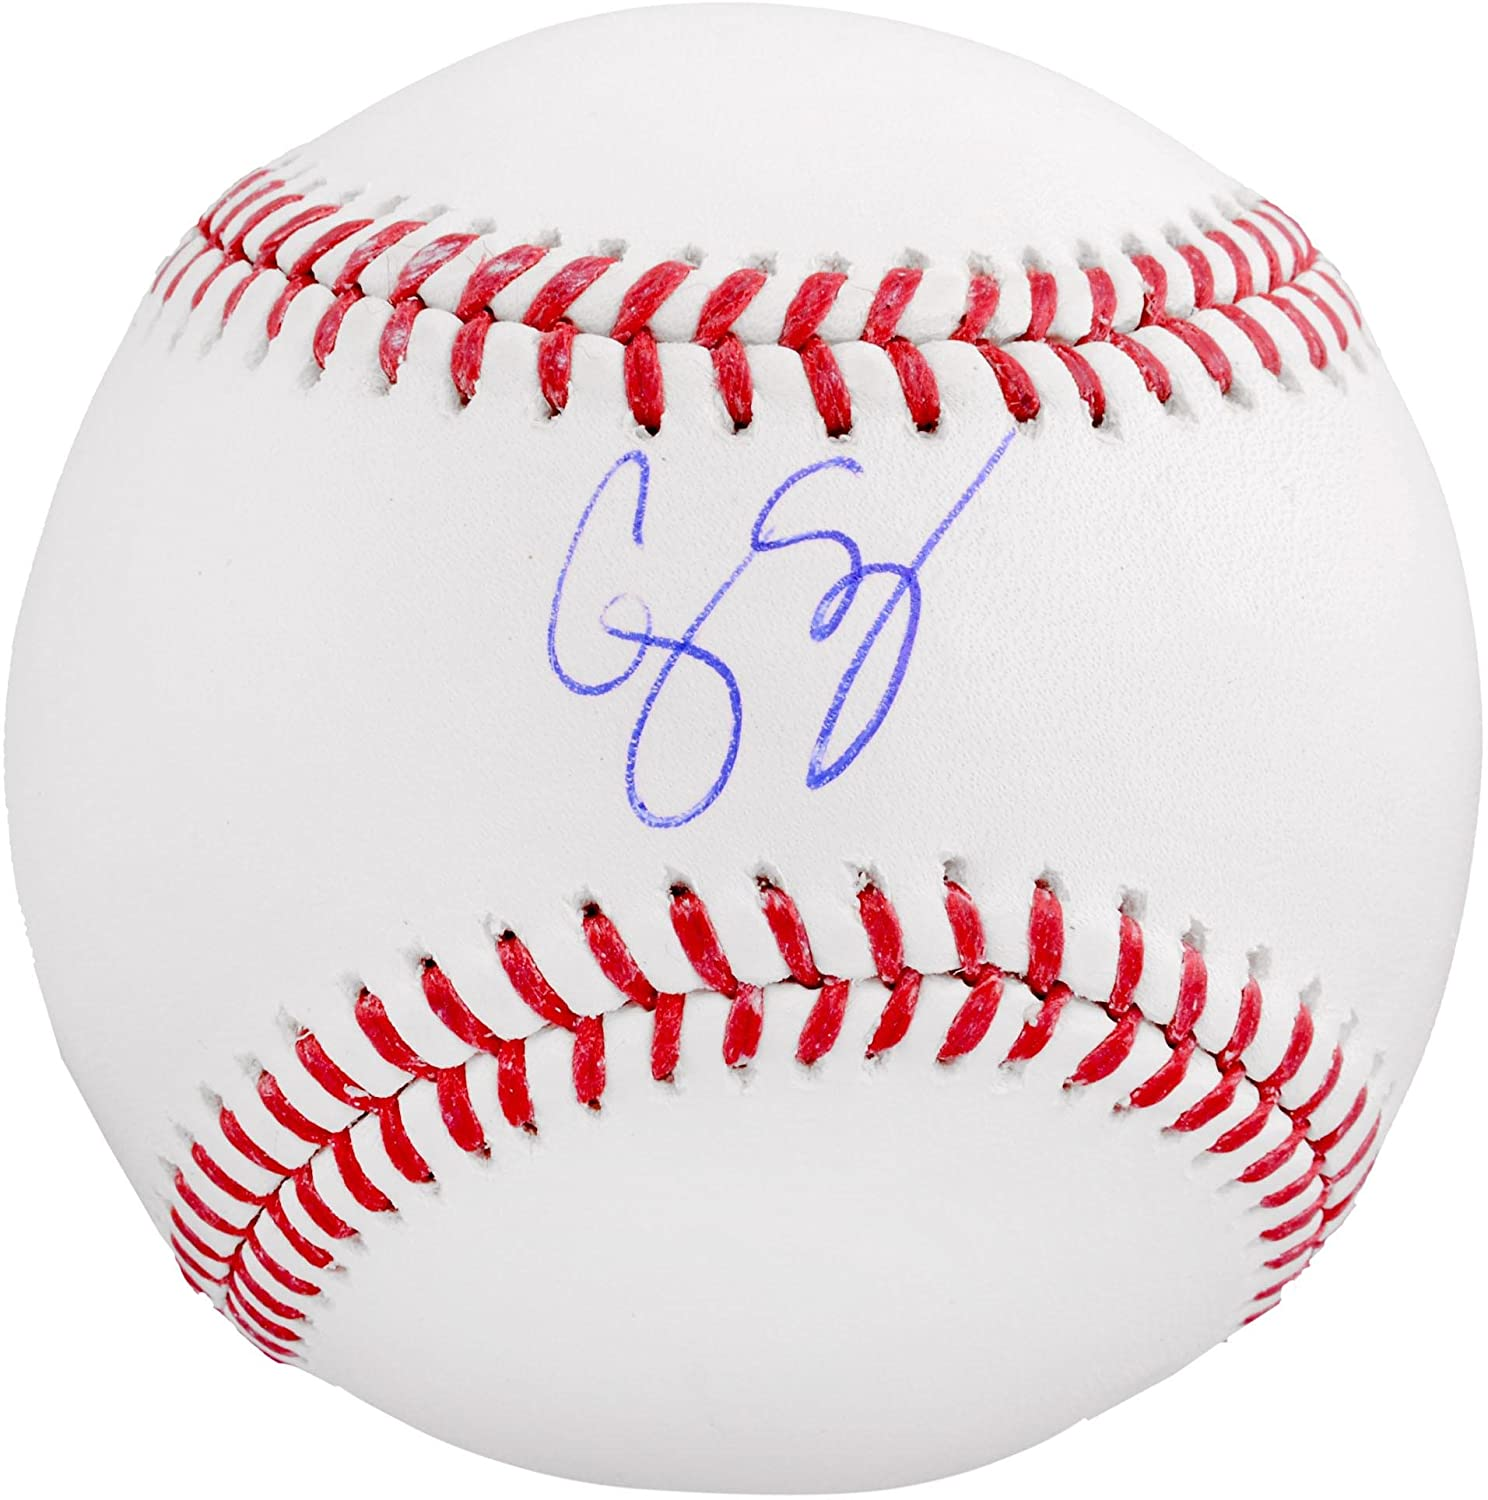 Corey Seager Los Angeles Dodgers Autographed Baseball - Fanatics Authentic Certified - Autographed Baseballs